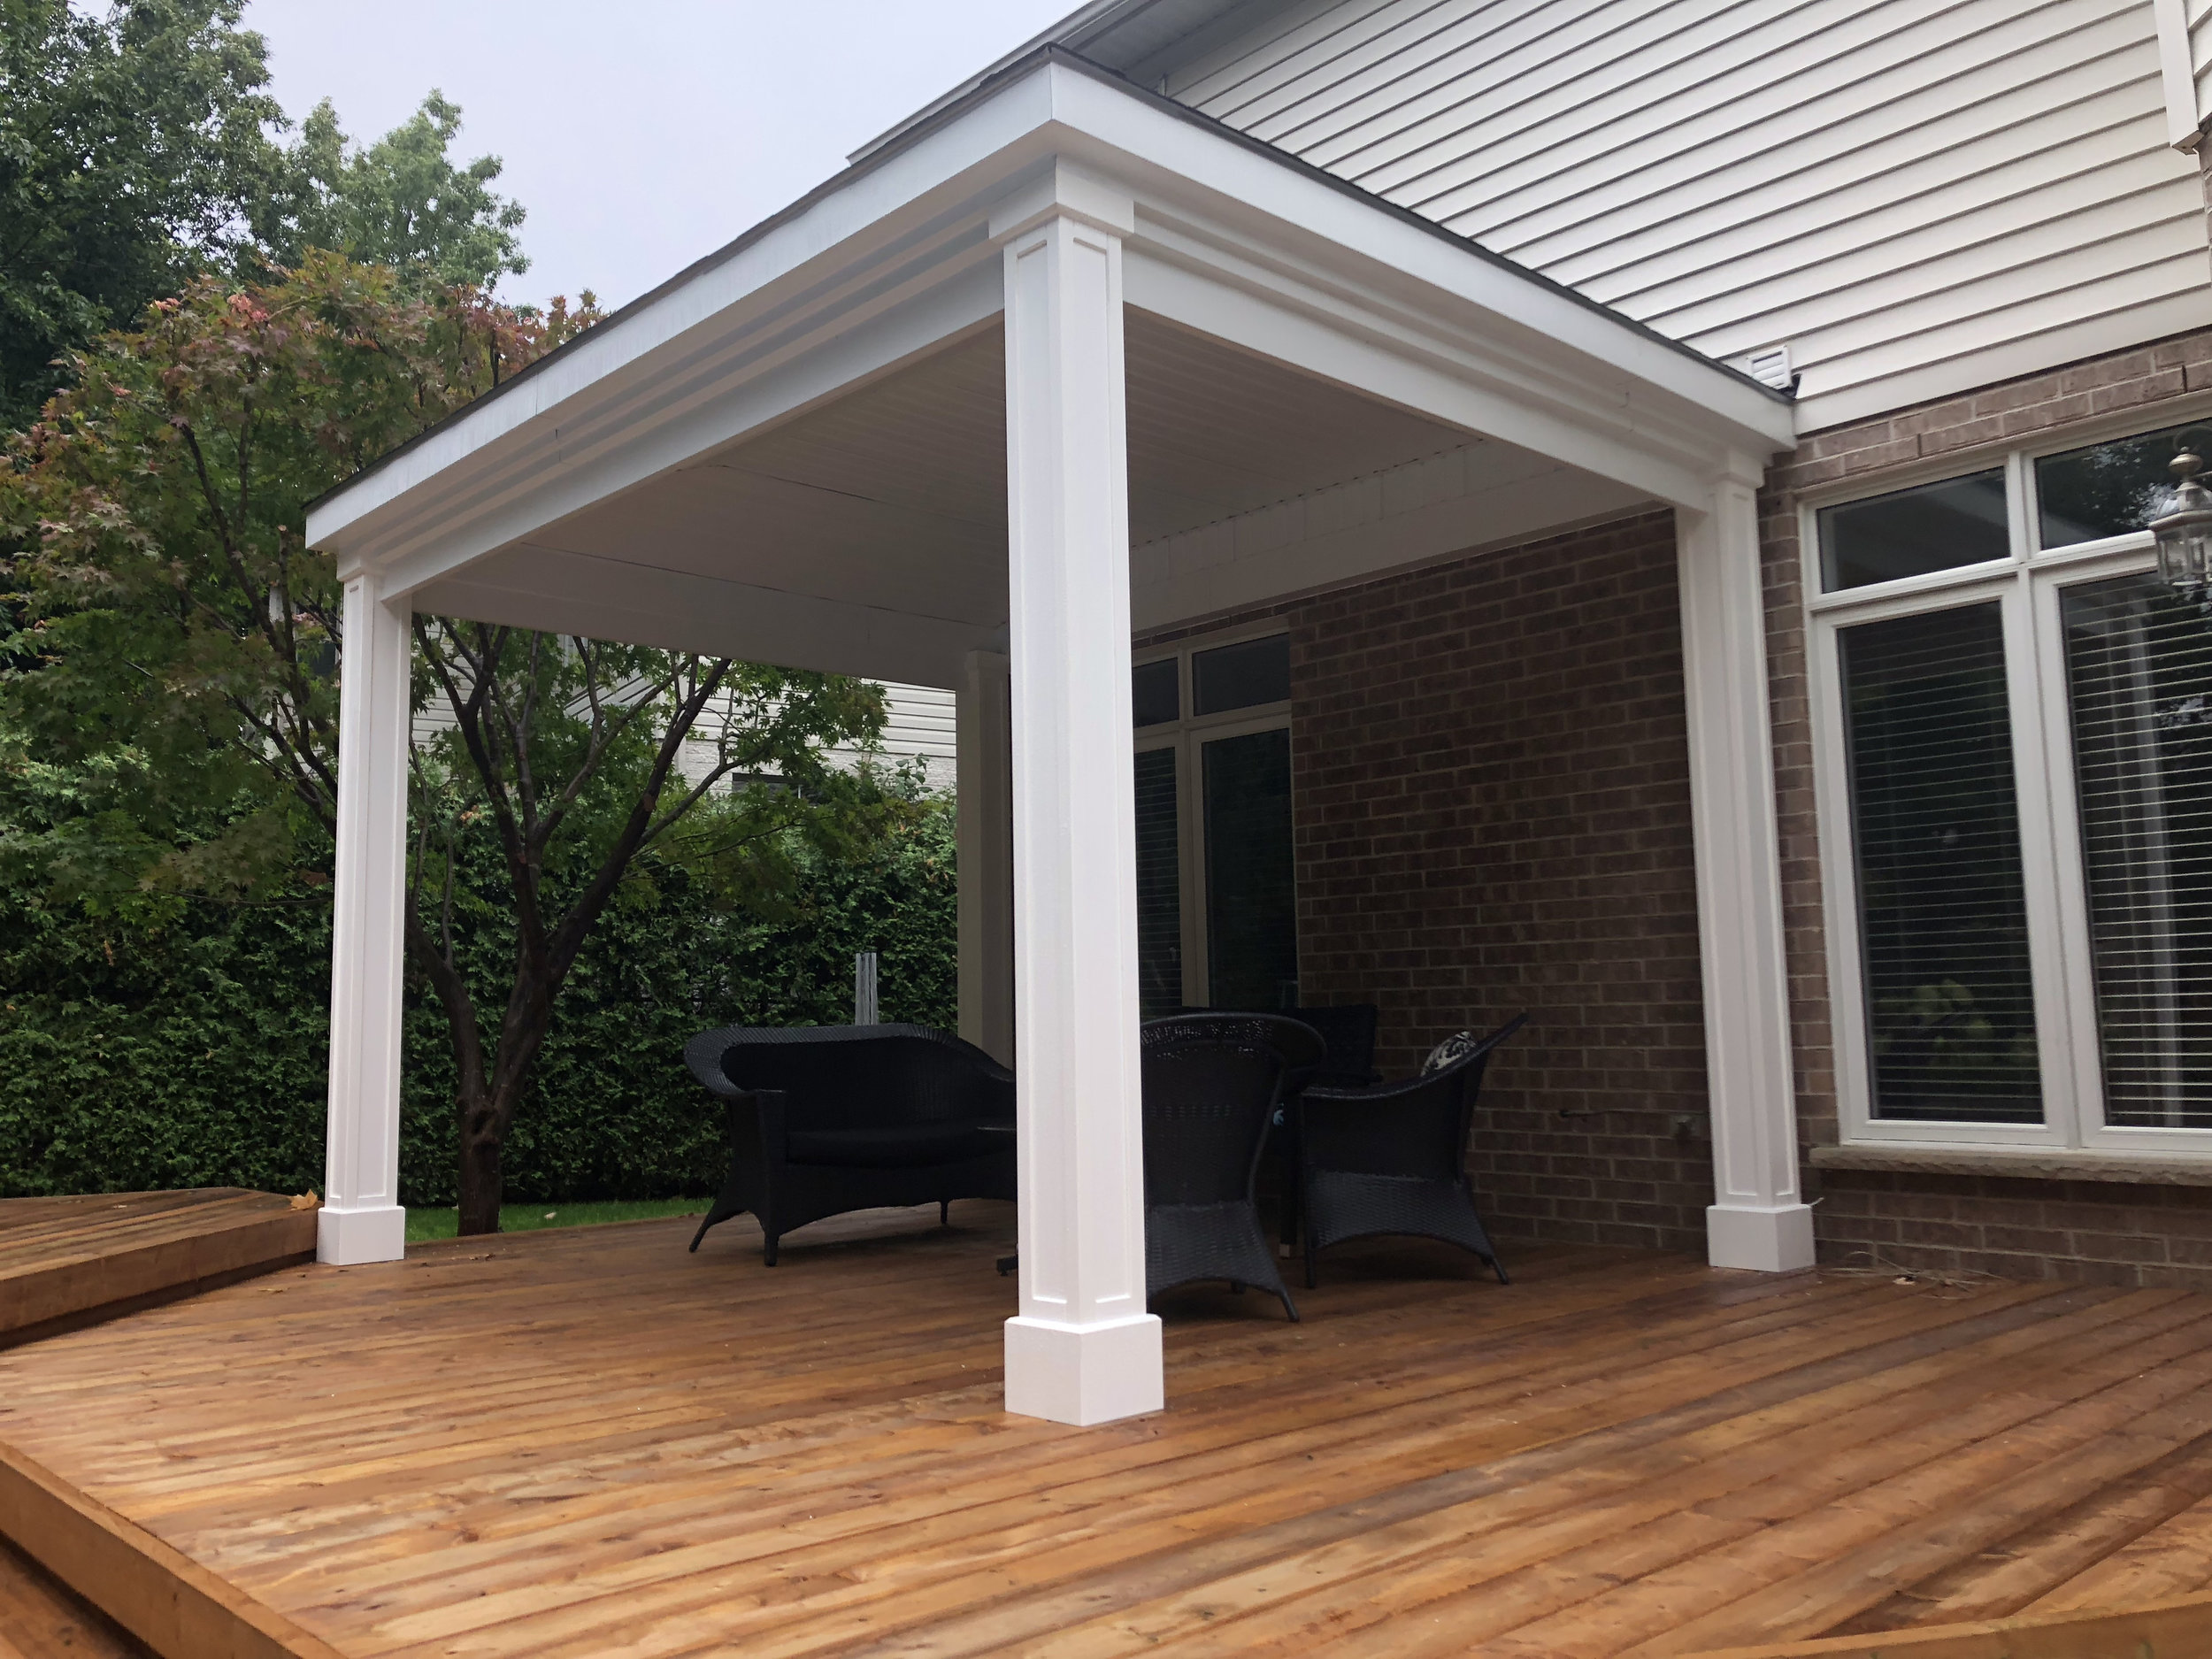 Two Tier Deck And Gazebo True North General Contractors